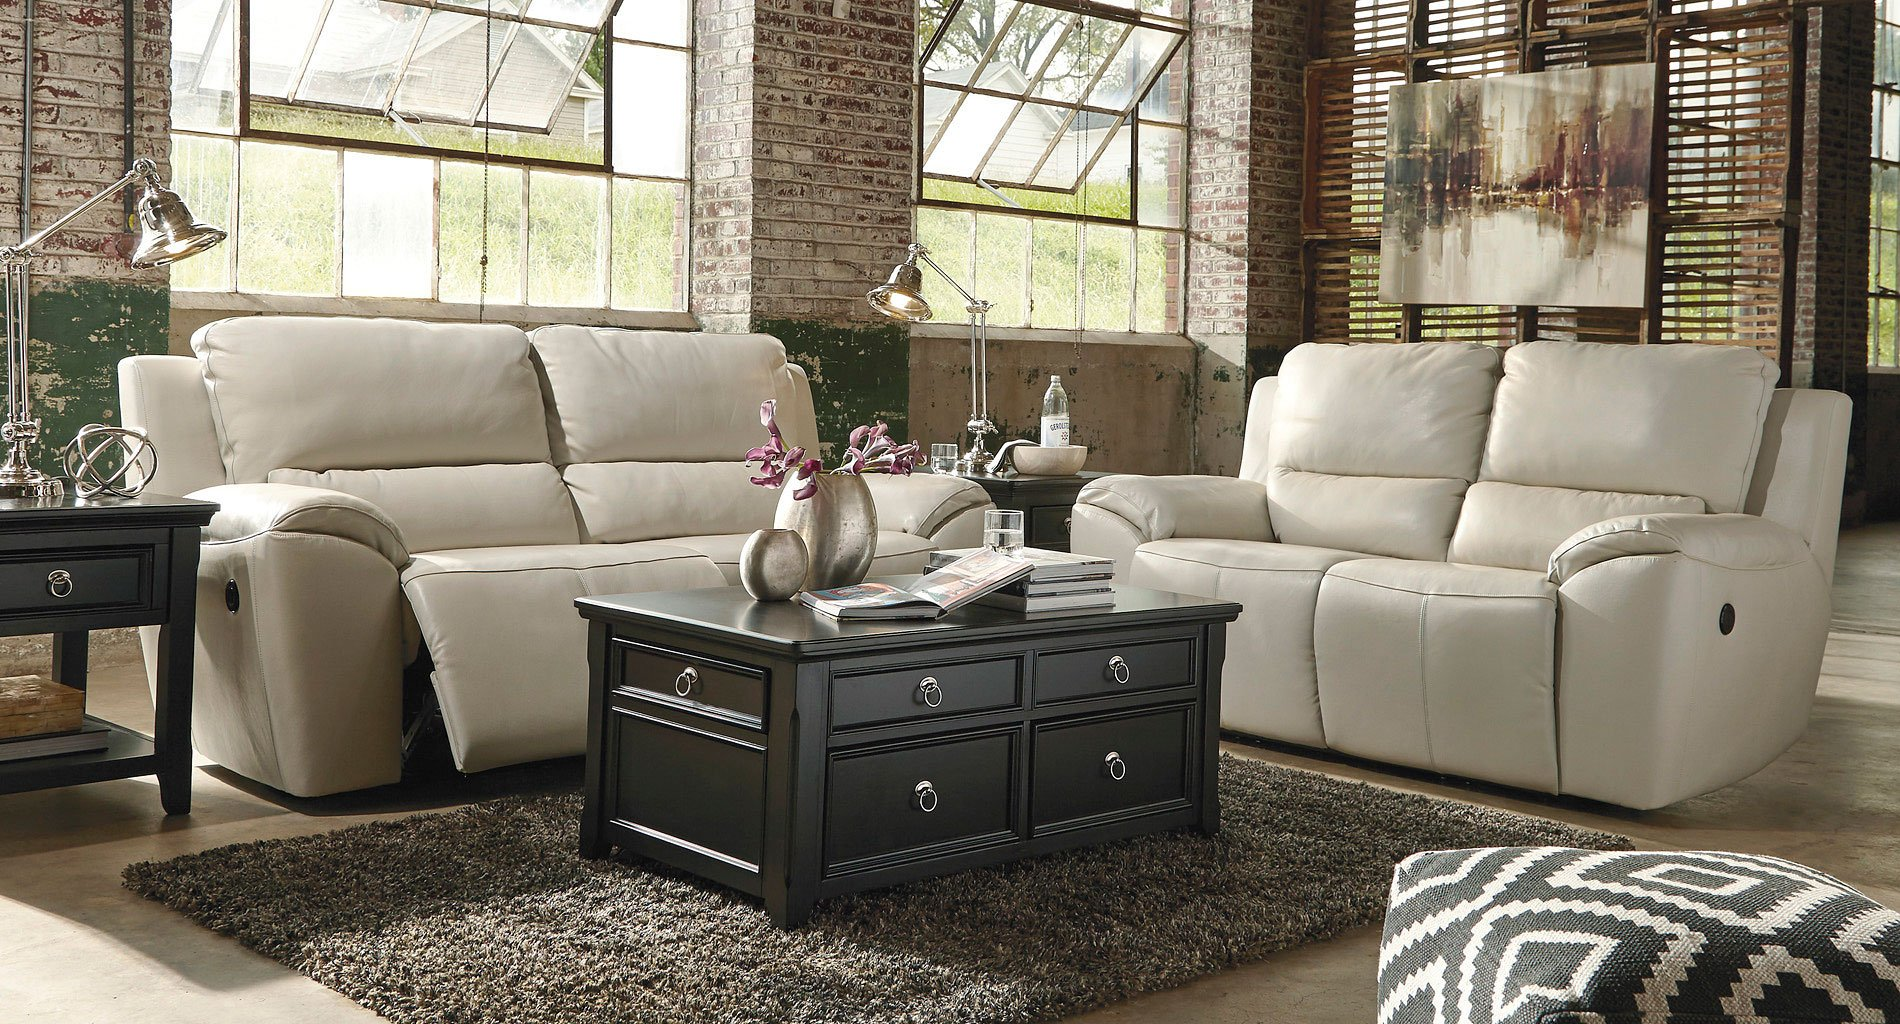 valeton cream power reclining living room set by signature design by ashley 2 reviews. Black Bedroom Furniture Sets. Home Design Ideas